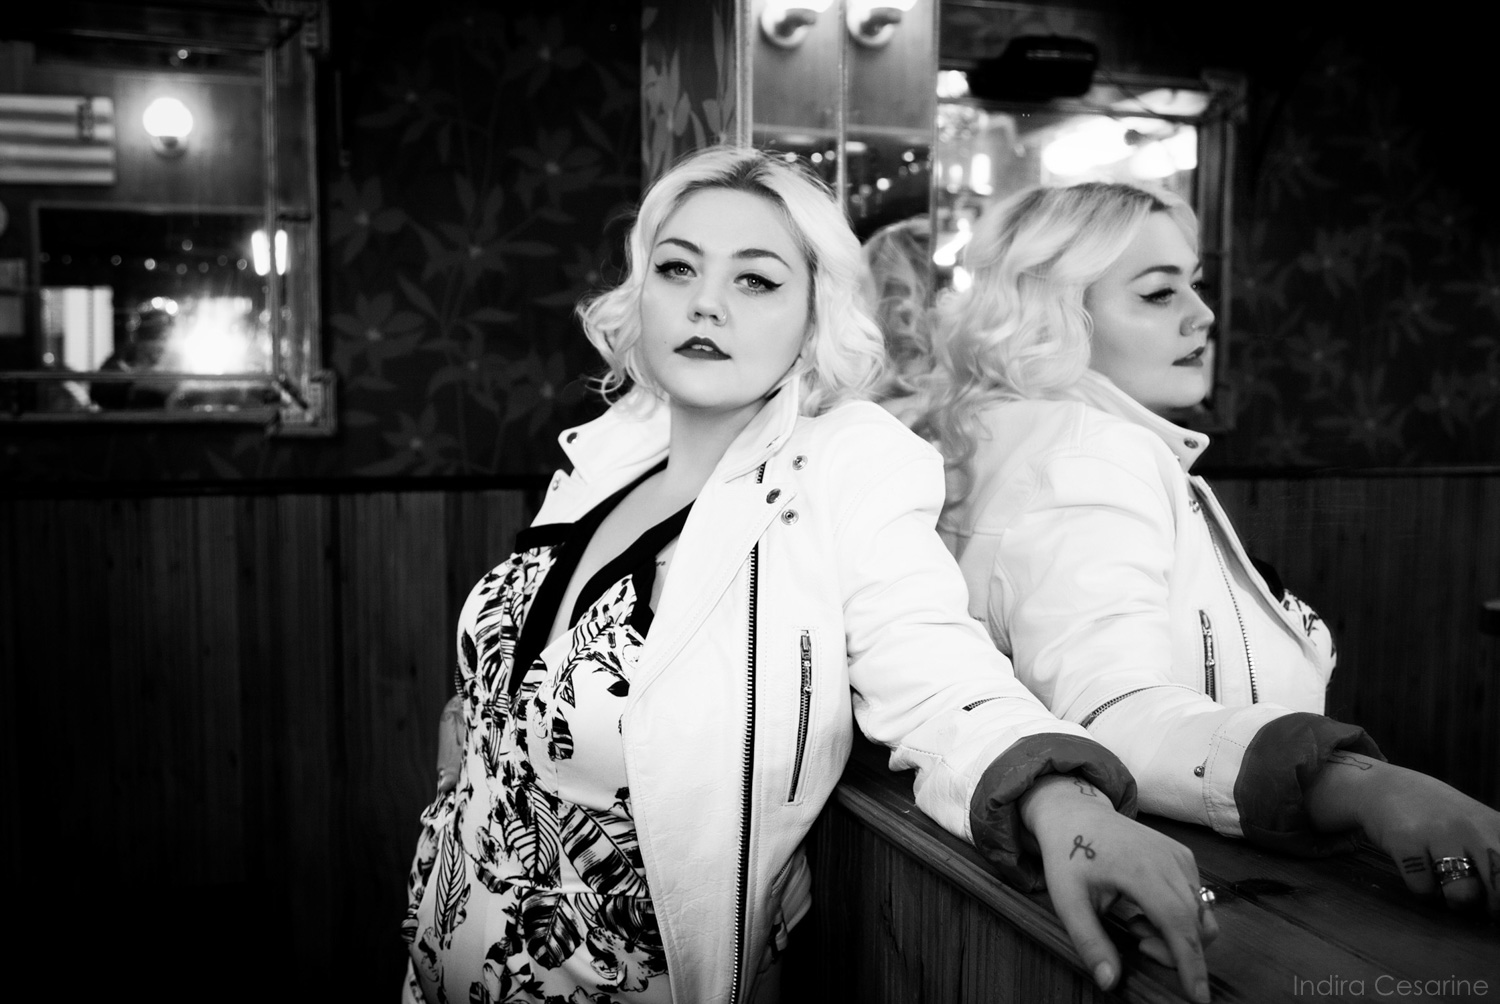 Elle-King-Photography-by-Indira-Cesarine-010.jpg